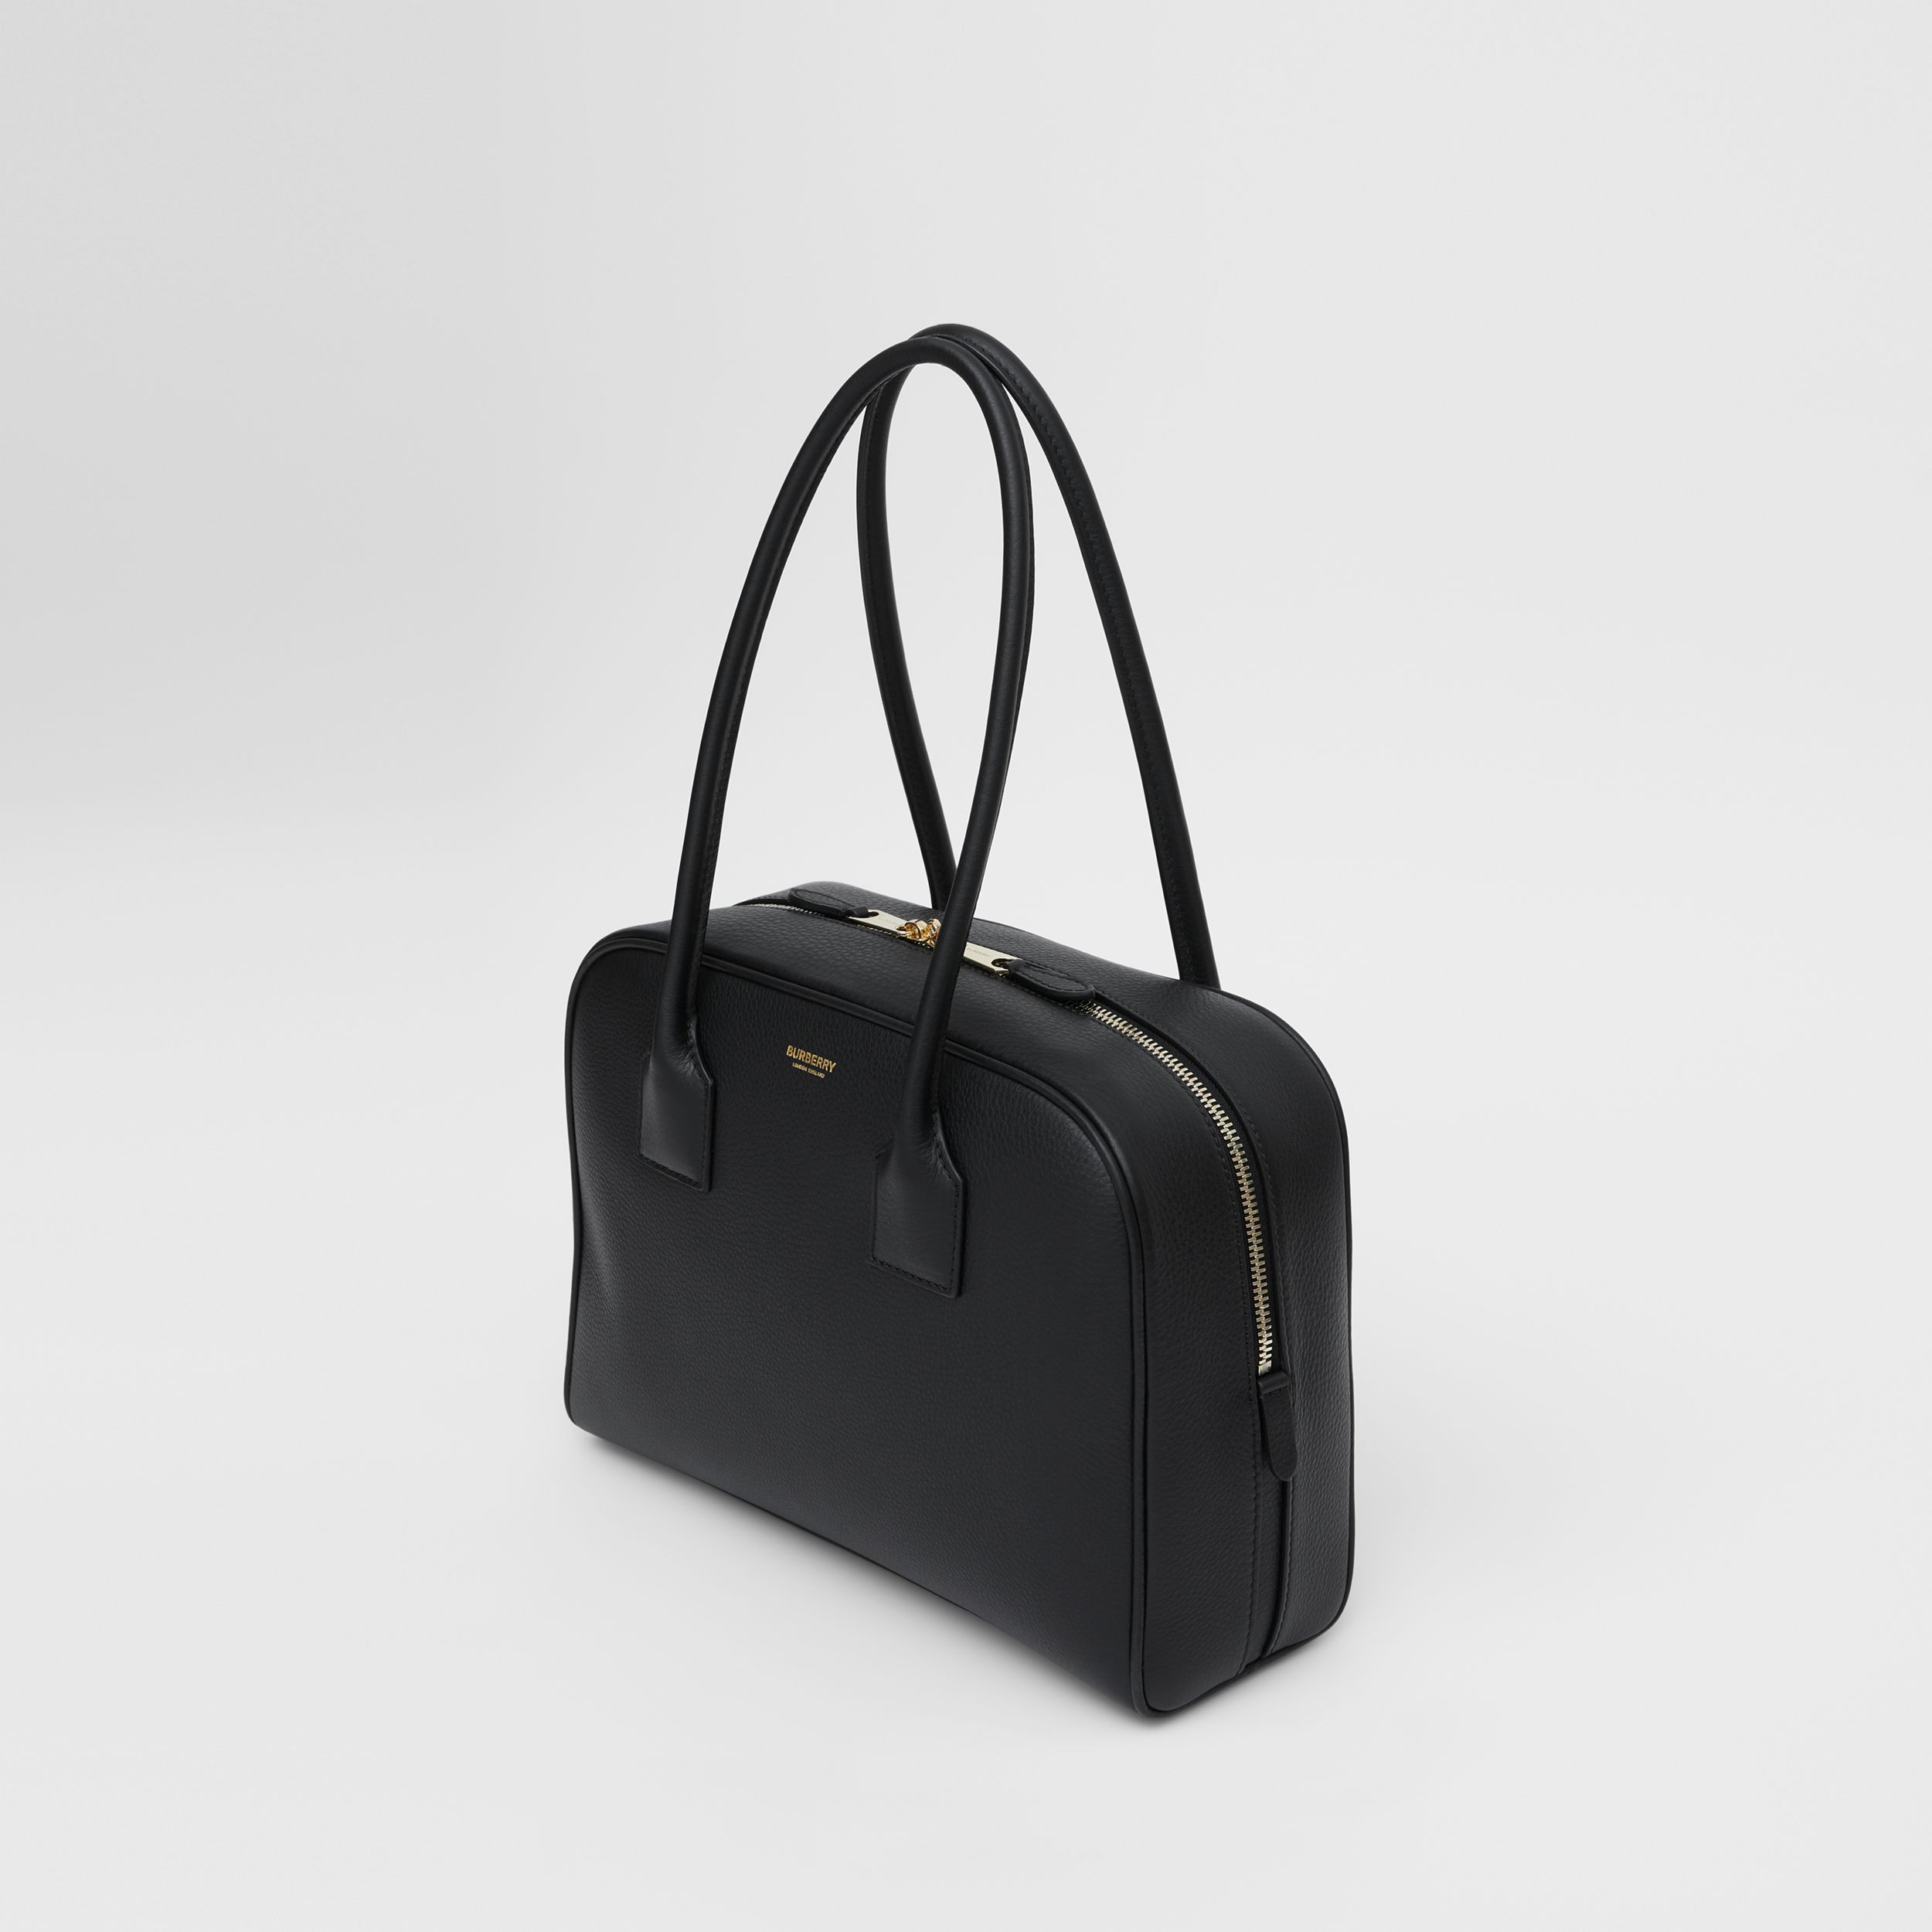 Medium Leather Half Cube Bag in Black - Women | Burberry - 4